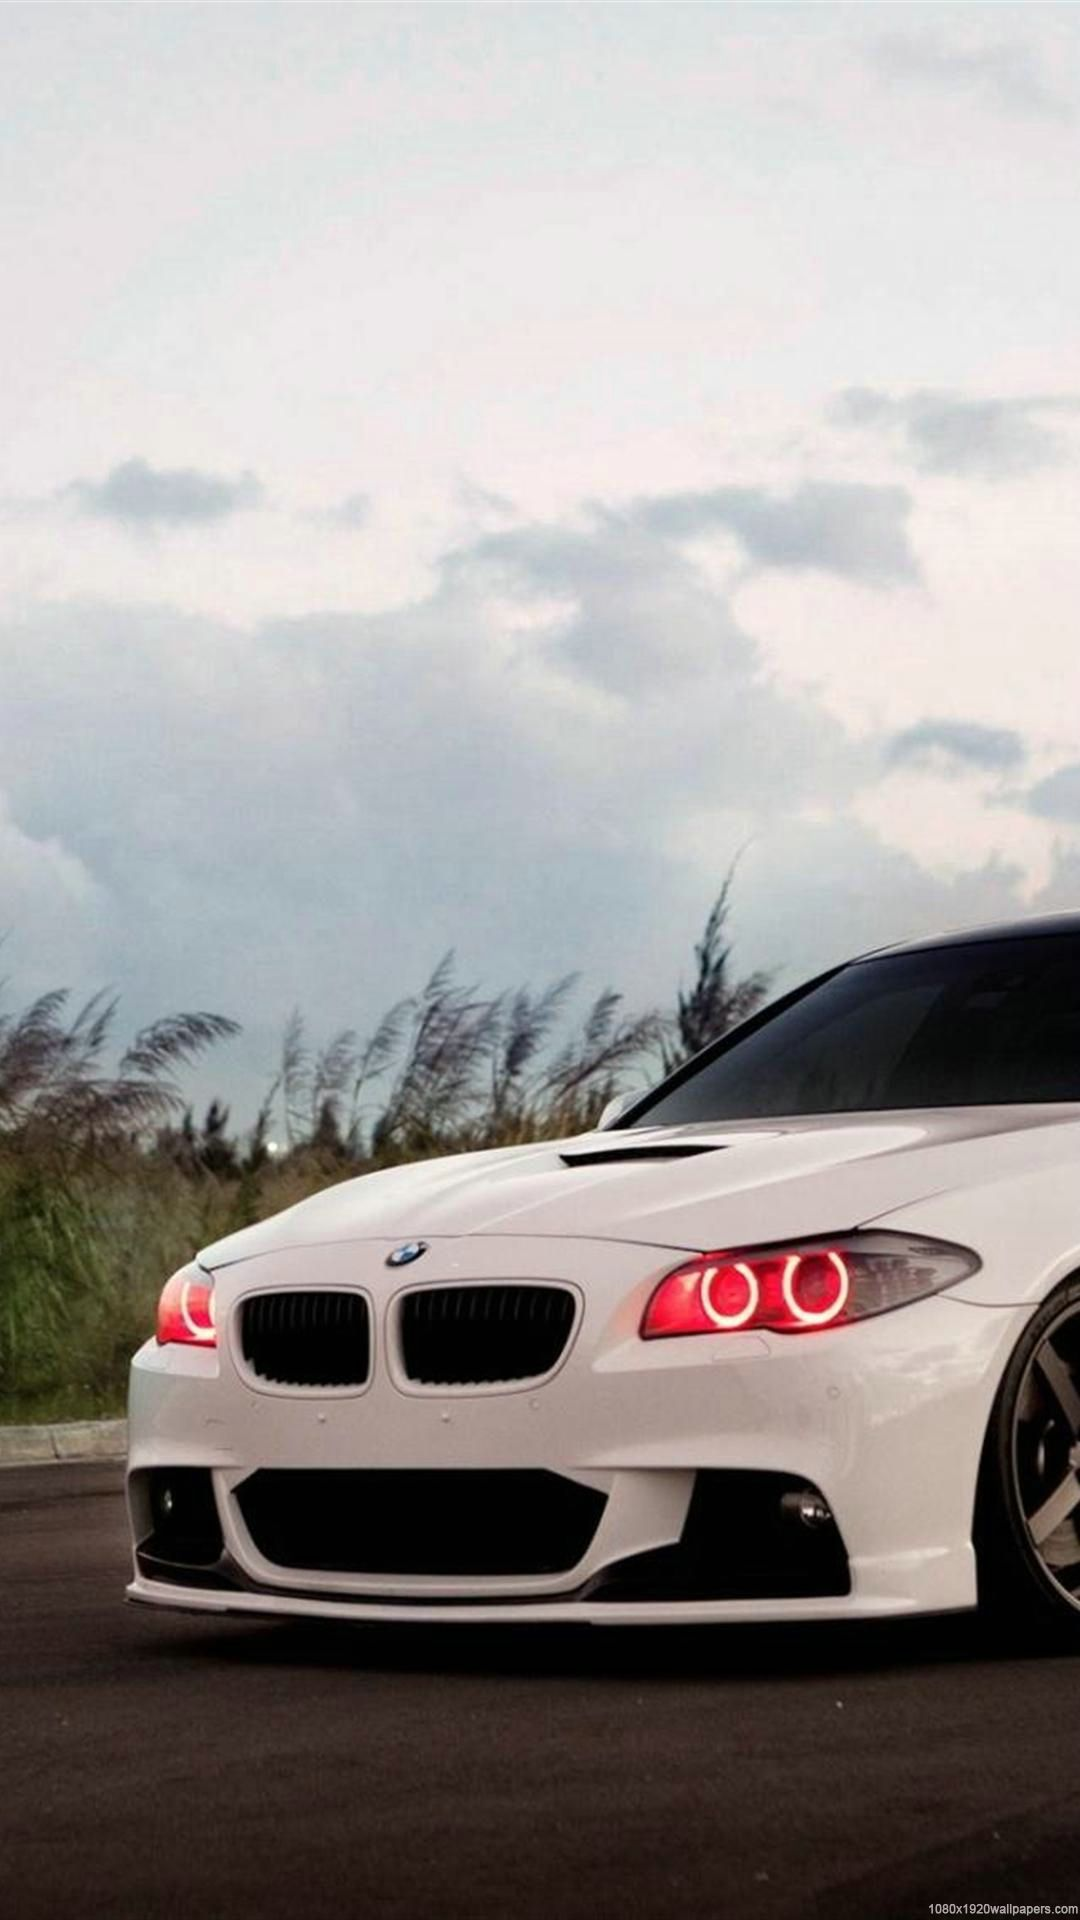 These are 5 Images about Bmw Car Wallpaper Hd For MobileDownload 1080x1920